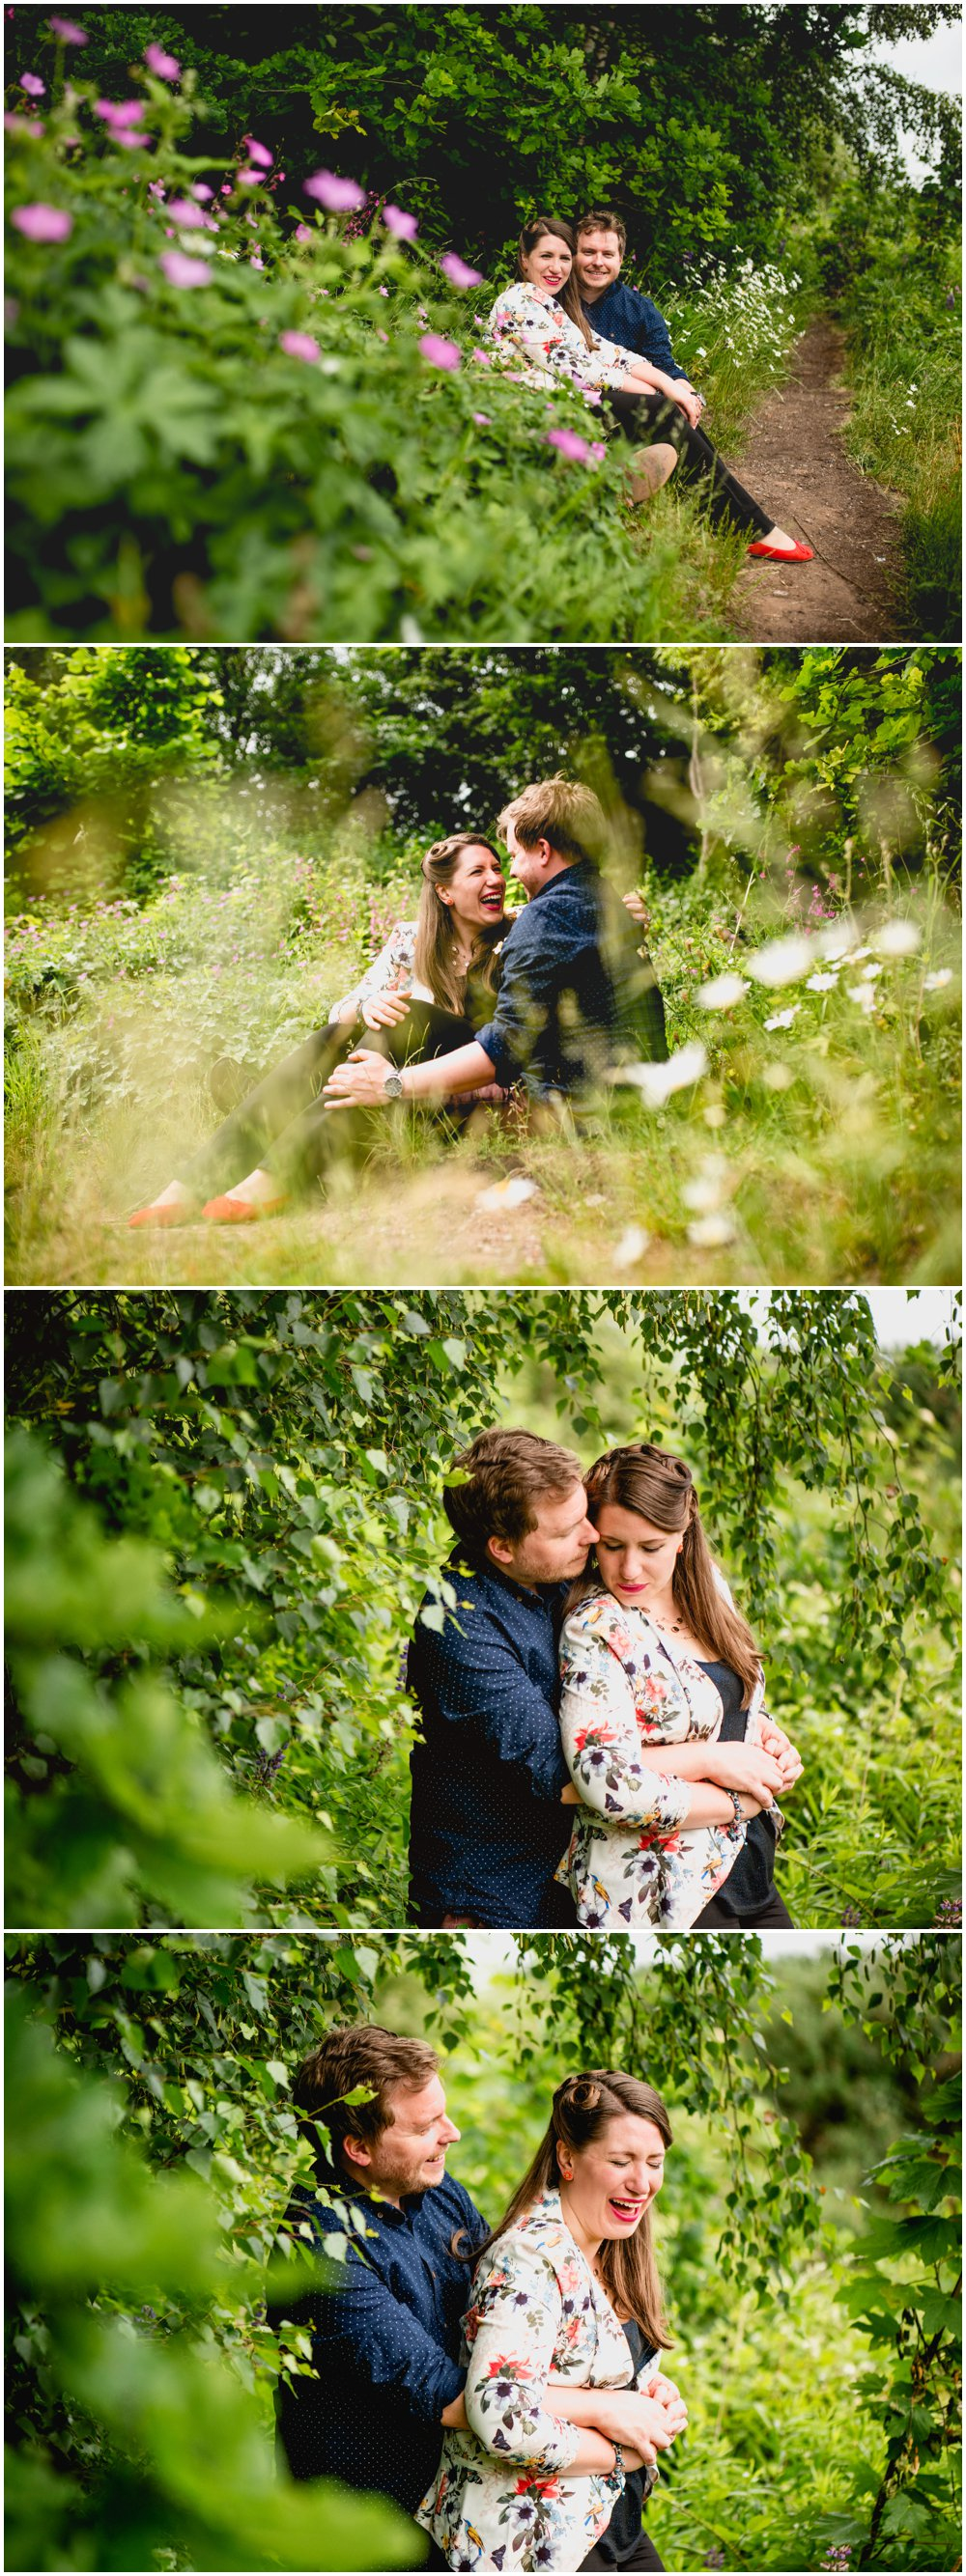 Bond Company engagement shoot in Digbeth with Johanna and Rich , canal side, urban, graffiti, countryside by Lisa Carpenter Photography, West Midlands and Birmingham based photographer